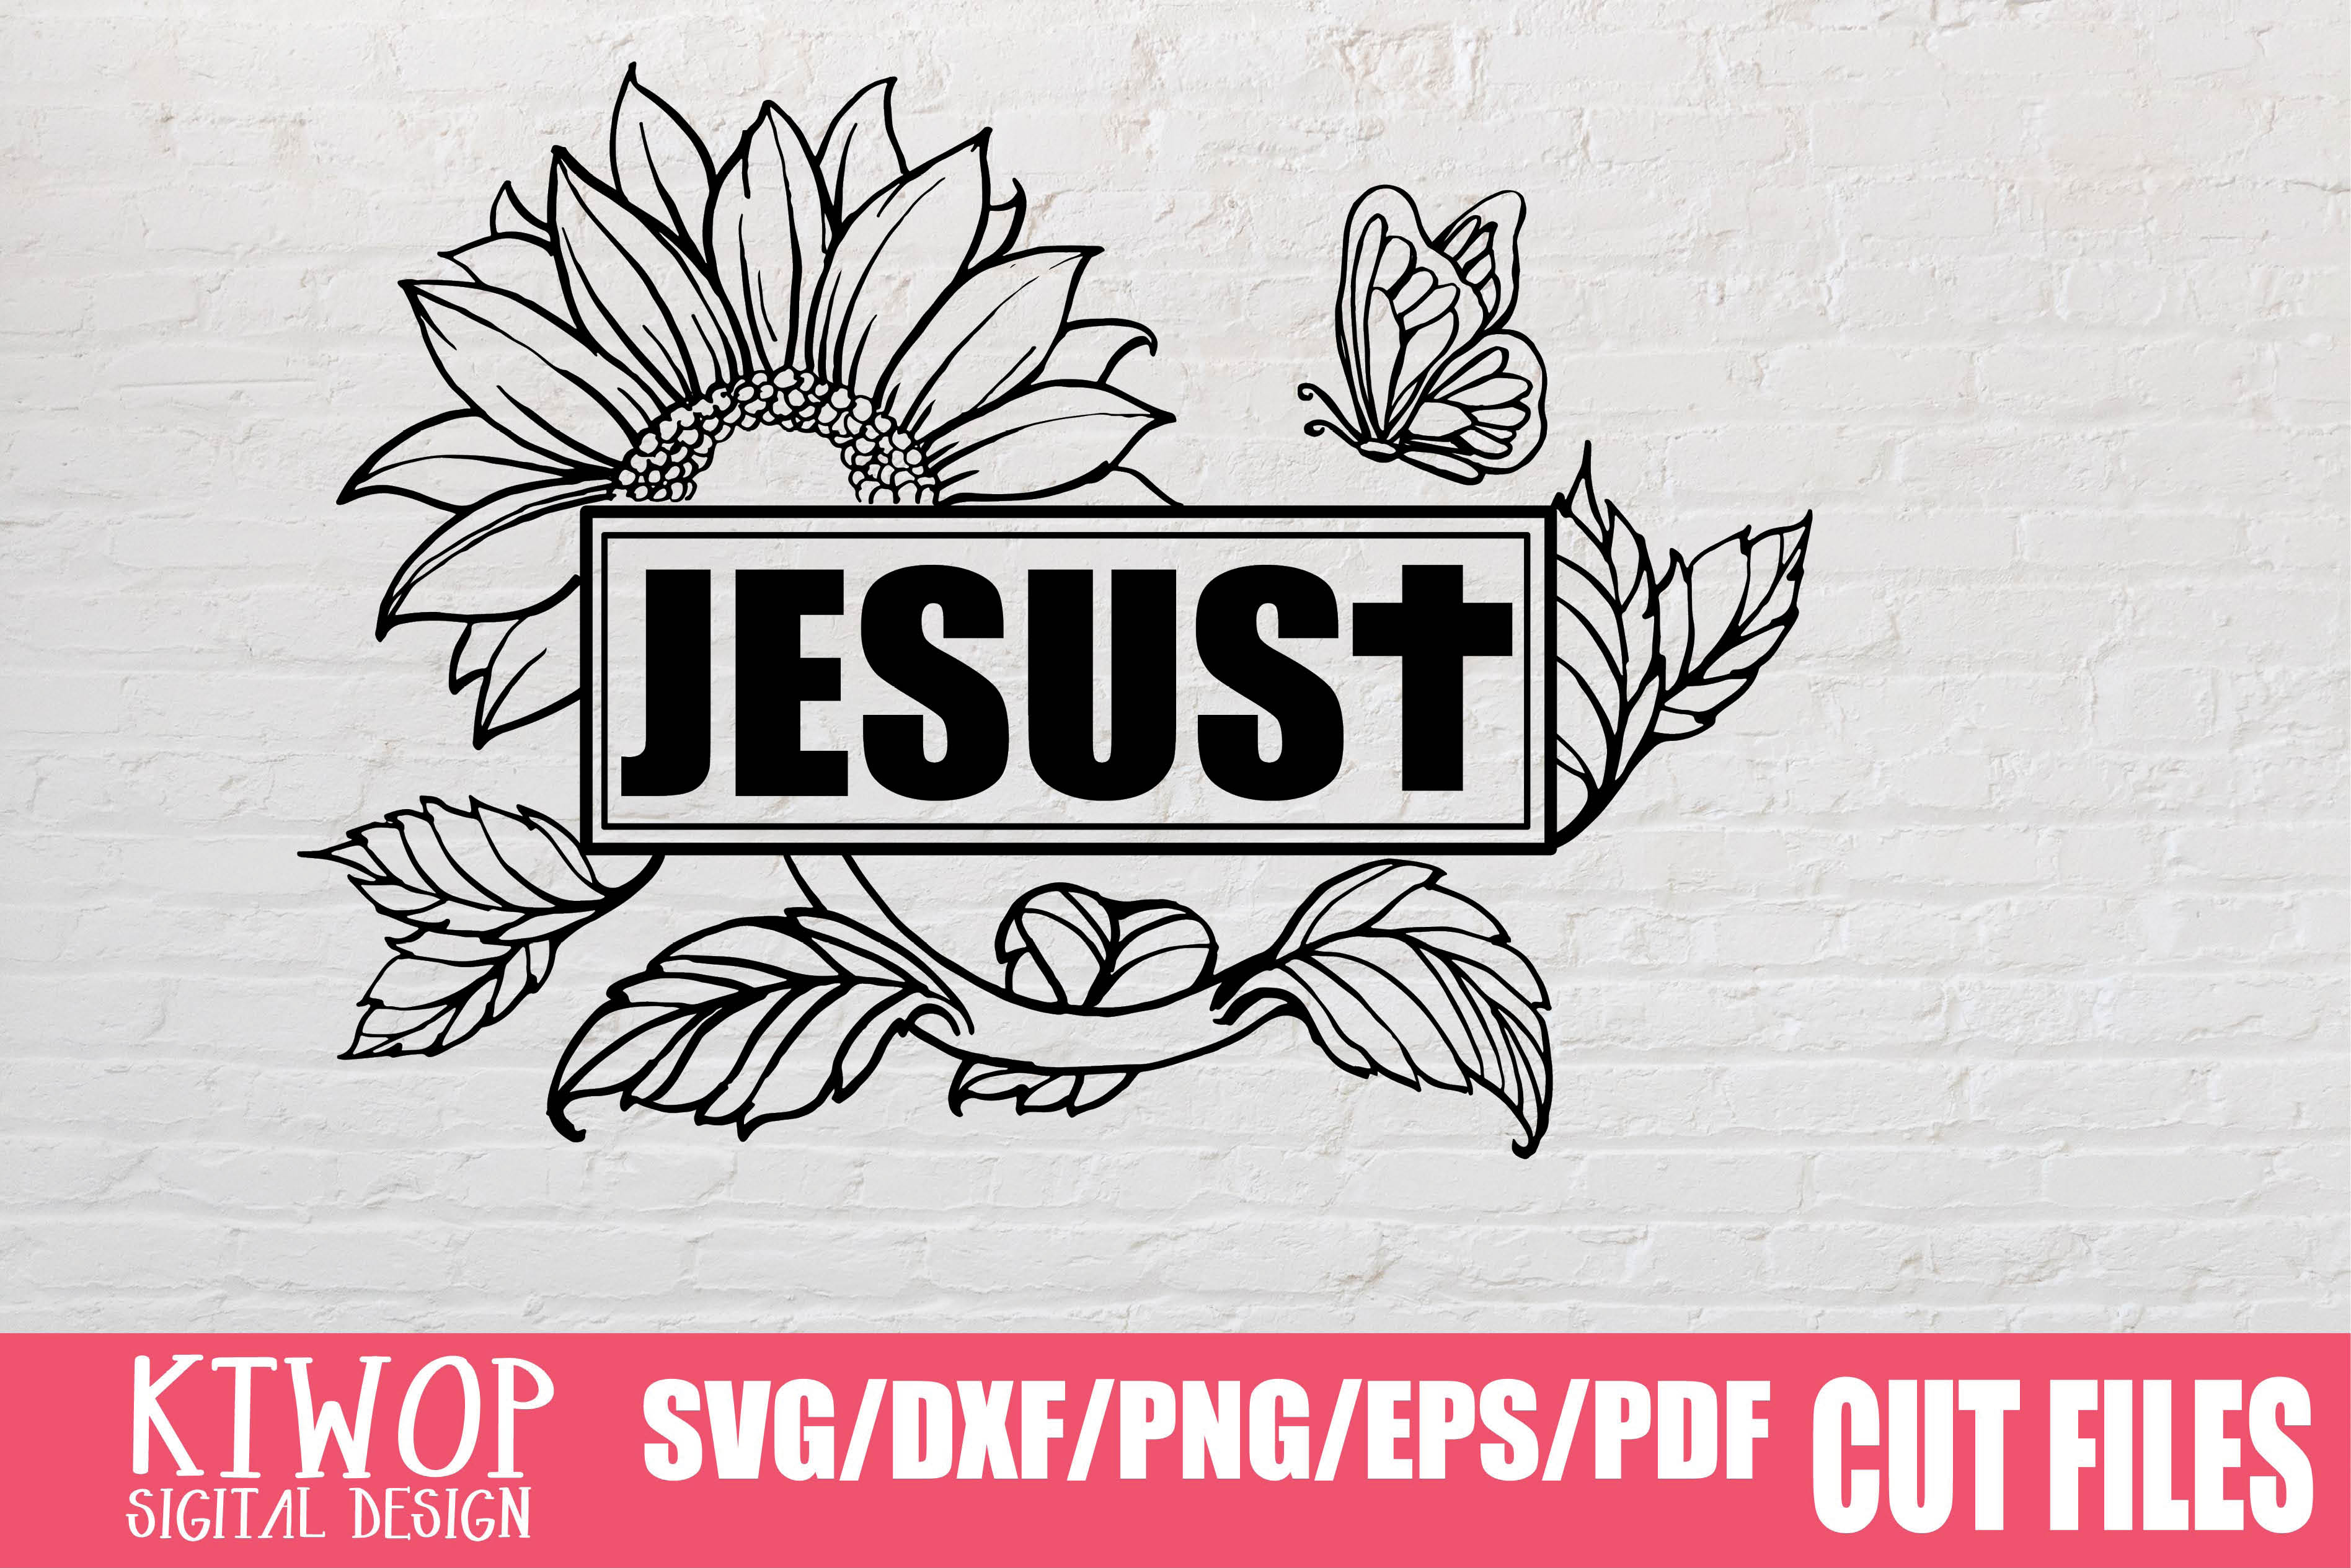 Download Free Sunflower Jesus 2020 Graphic By Ktwop Creative Fabrica for Cricut Explore, Silhouette and other cutting machines.